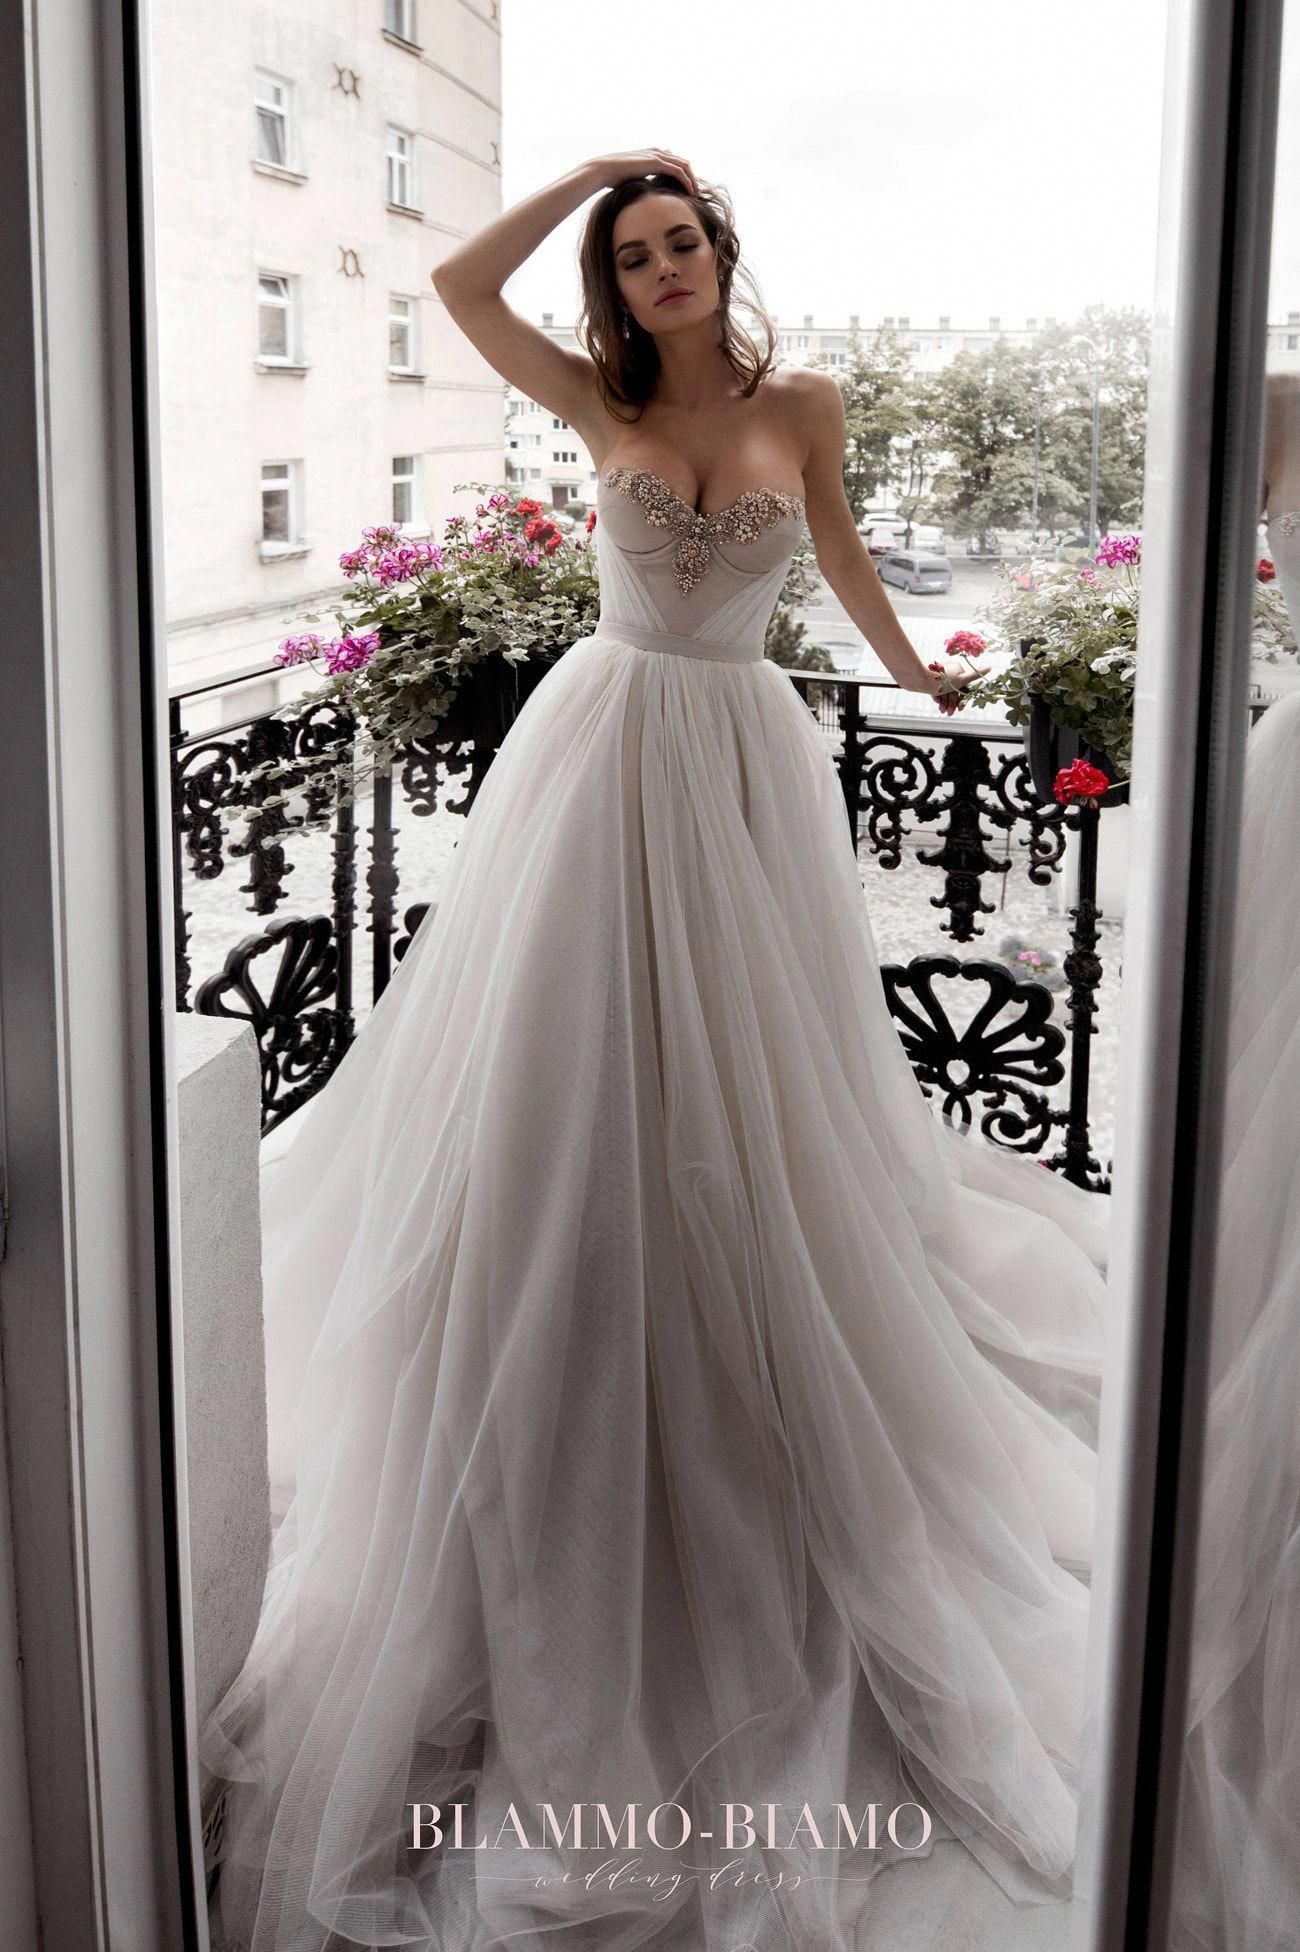 Hourglass Shaped Body Wedding Dress Best Wedding Dresses For